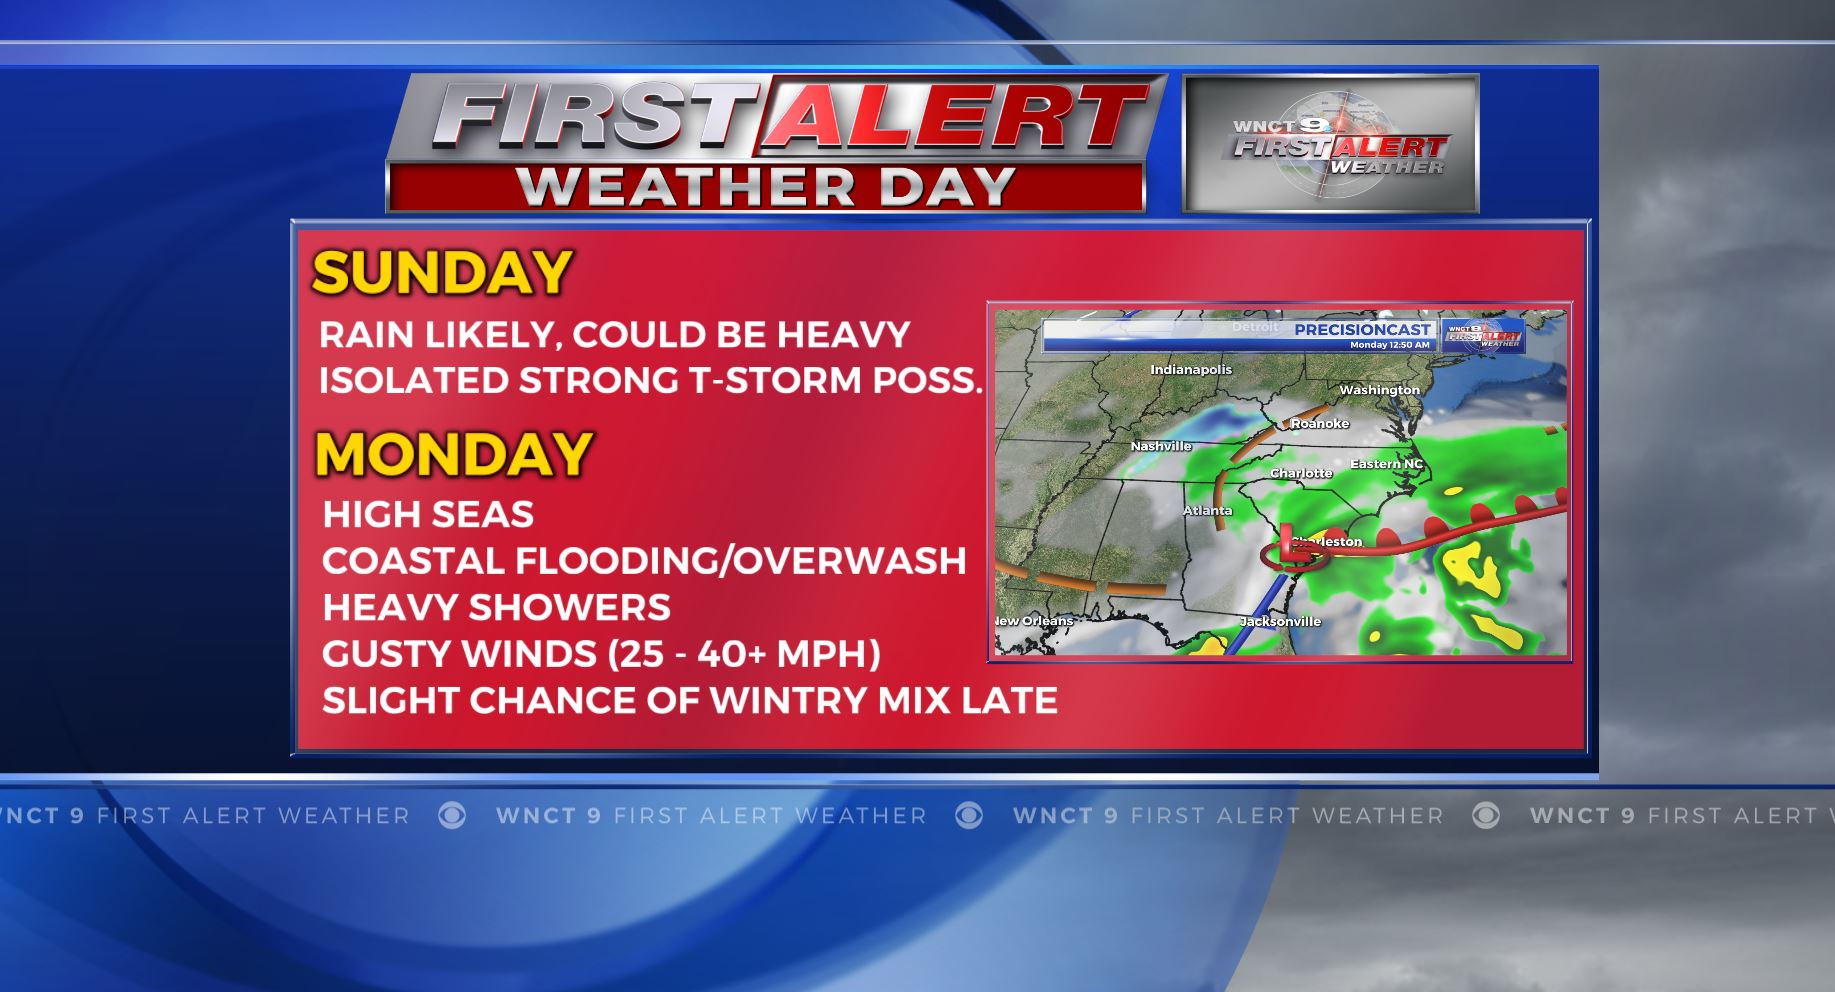 First Alert Forecast: Rain likely for Sunday and Monday